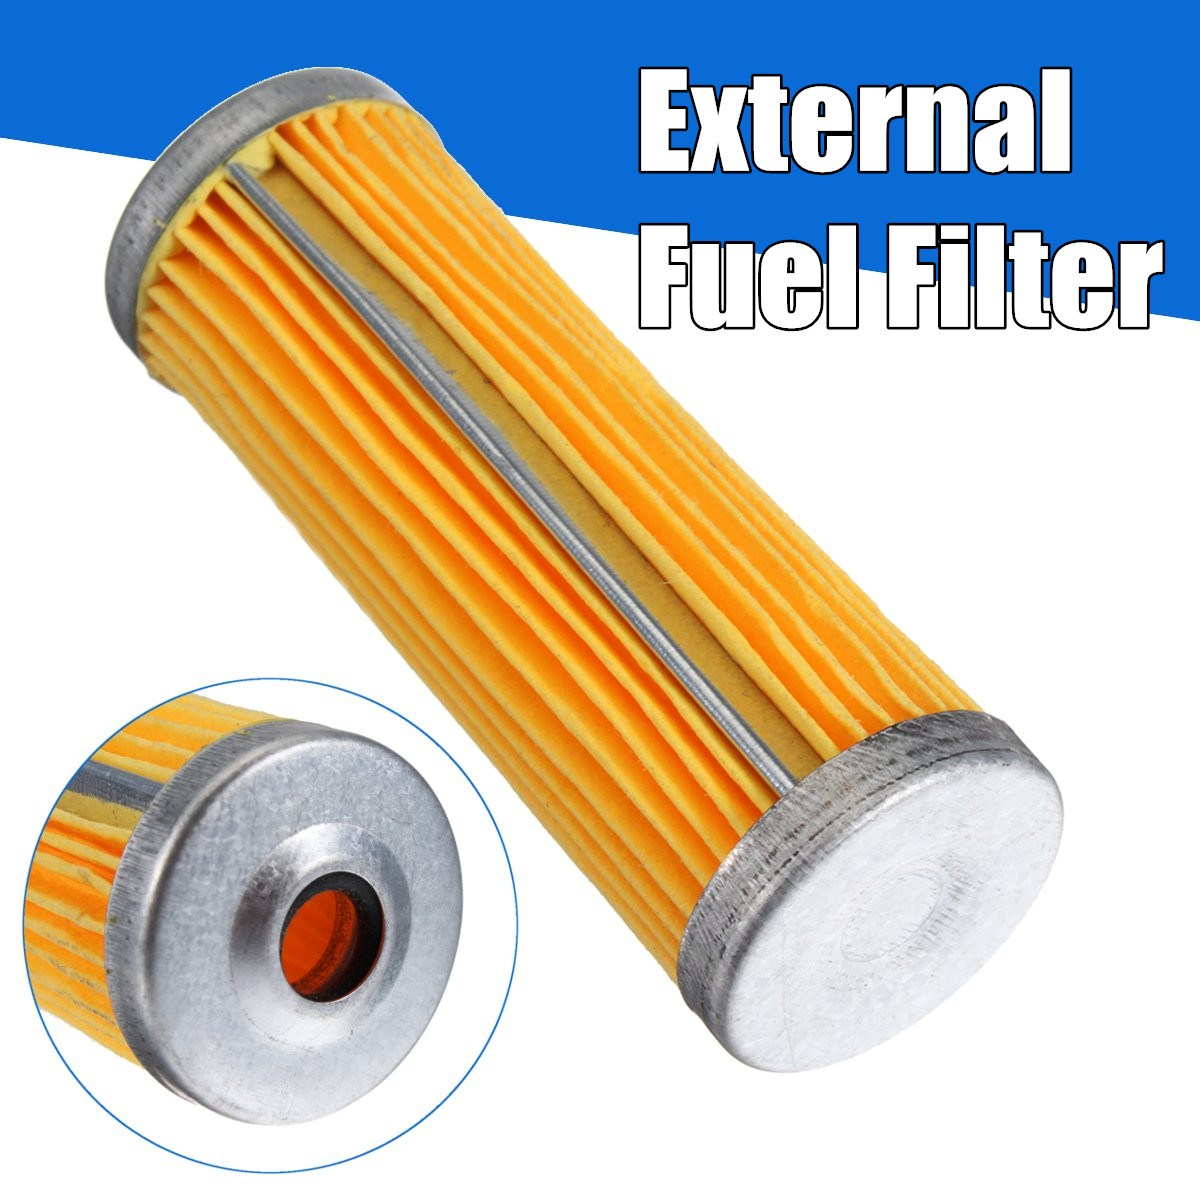 External Fuel Filter for 186F 186FE 186FA 186FAE 178FE 170FE /Diesel  Generator-in Fuel Filters from Automobiles & Motorcycles on Aliexpress.com  | Alibaba ...